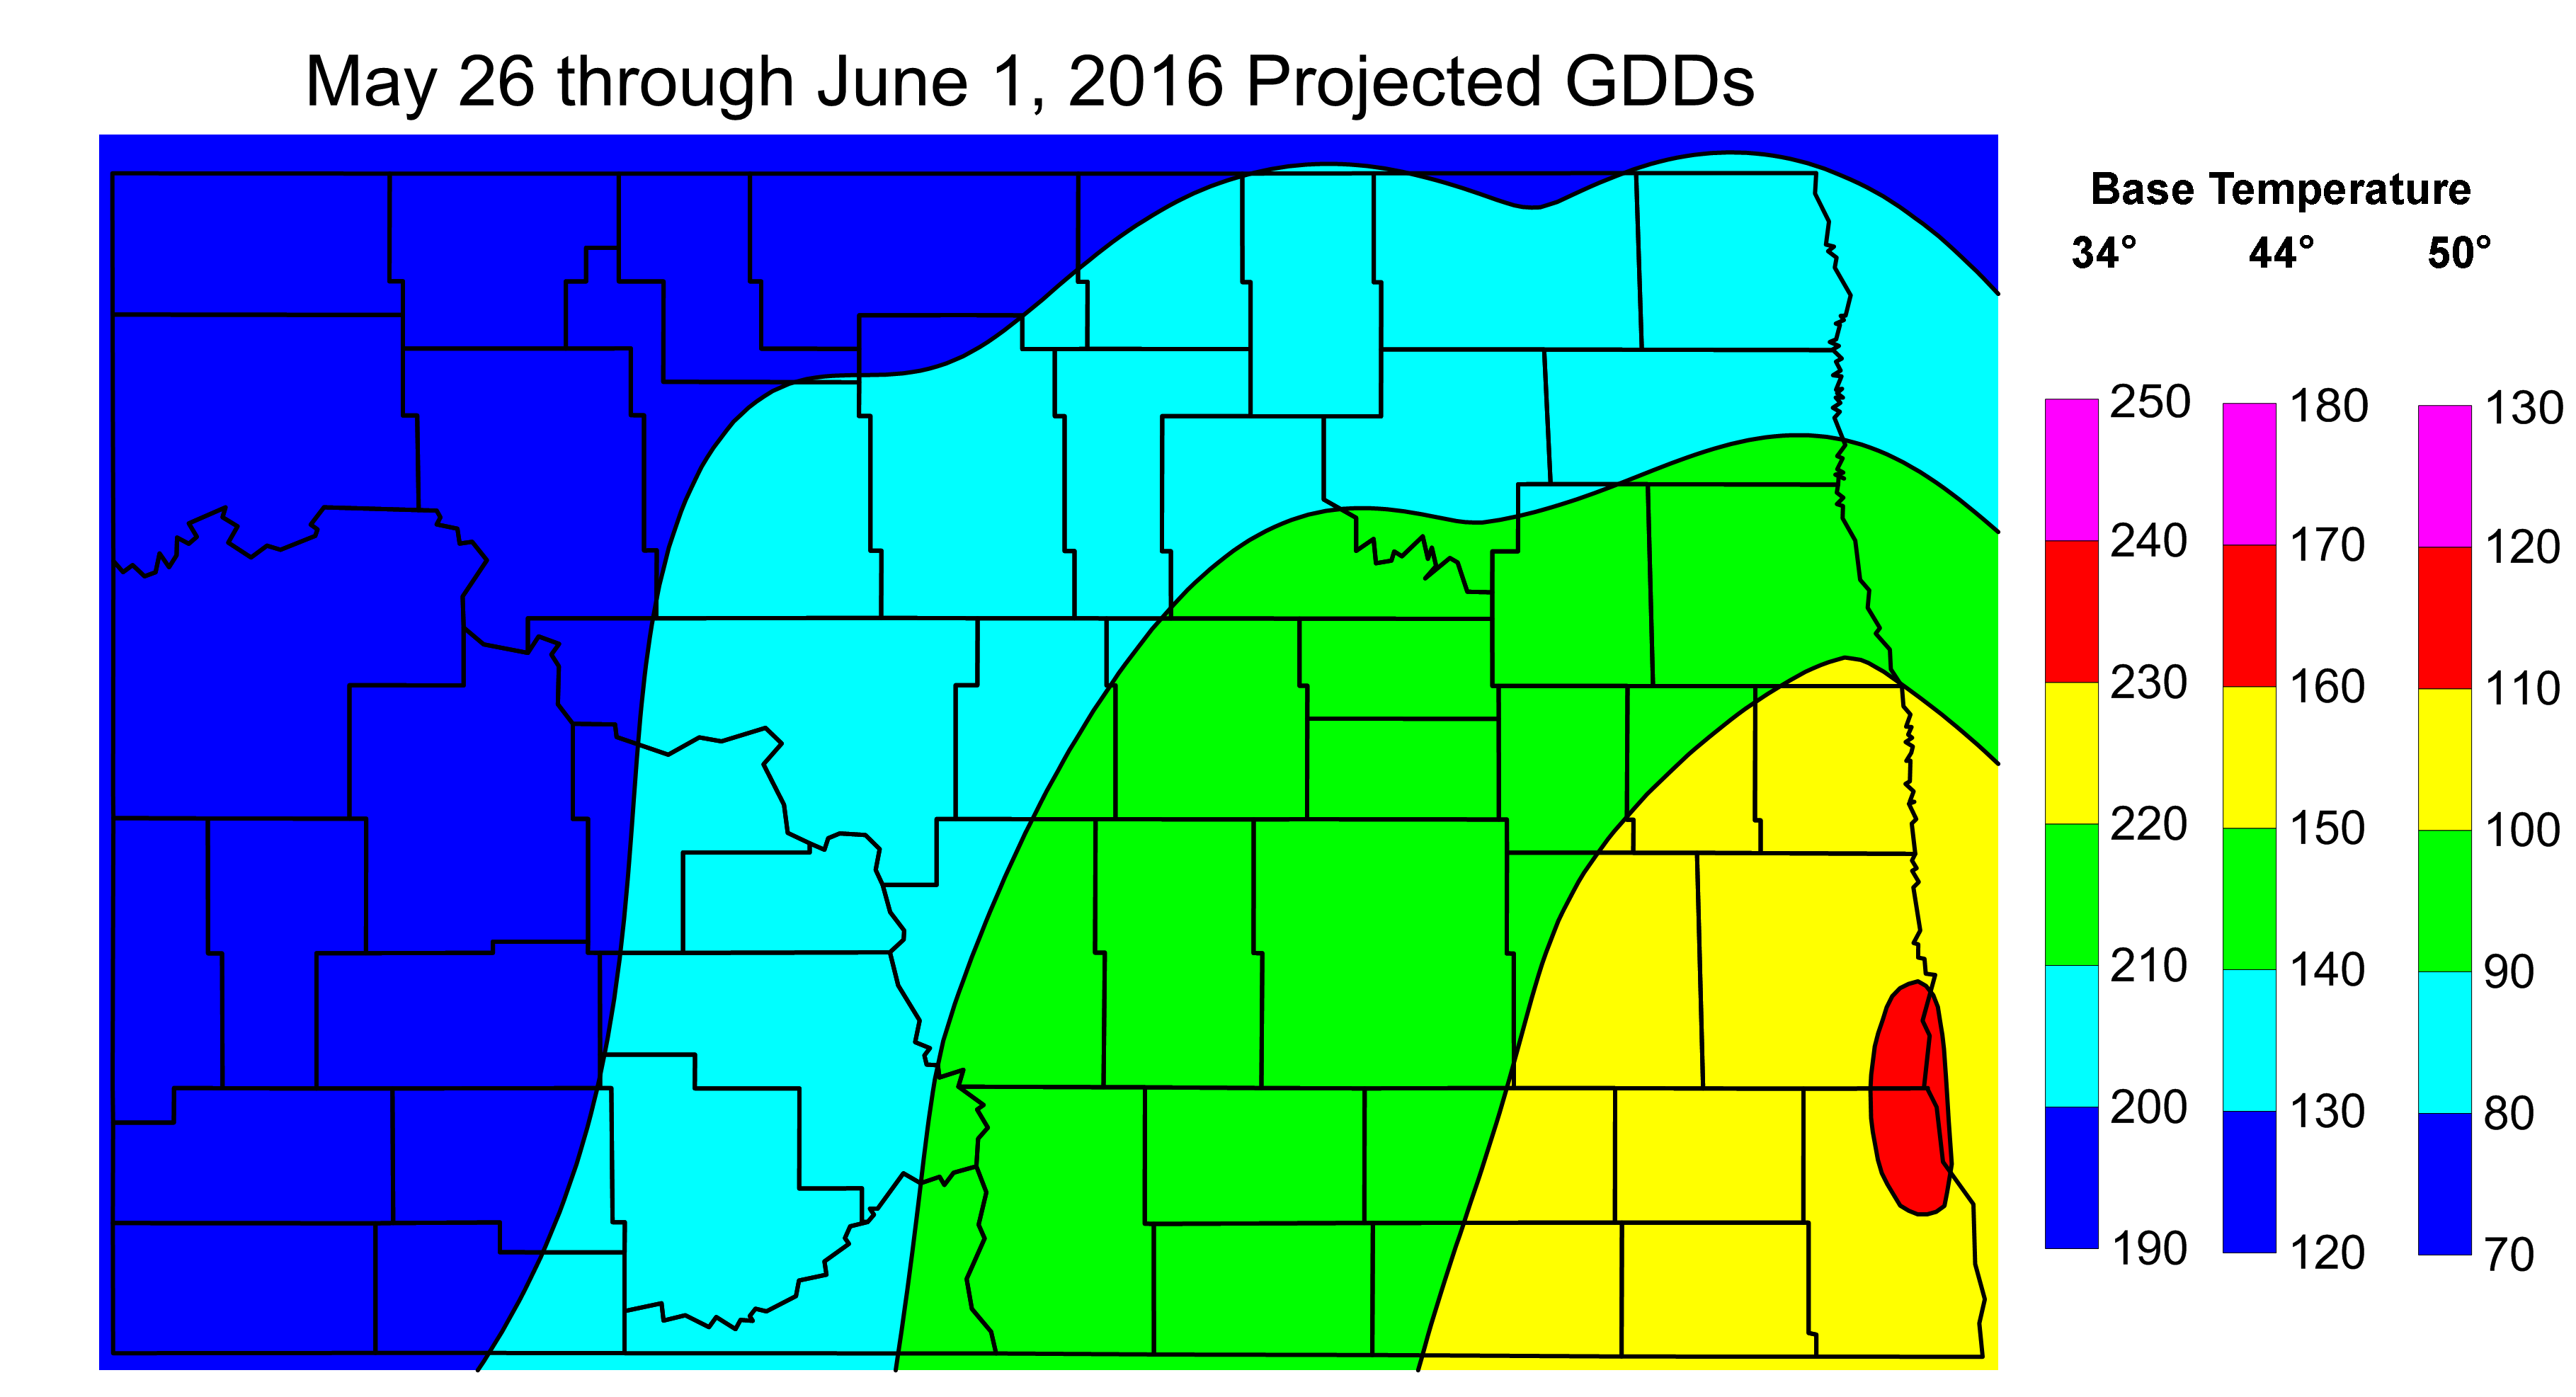 Figure 2. Projected Growing Degree Days from May 26 through June 1, 2016